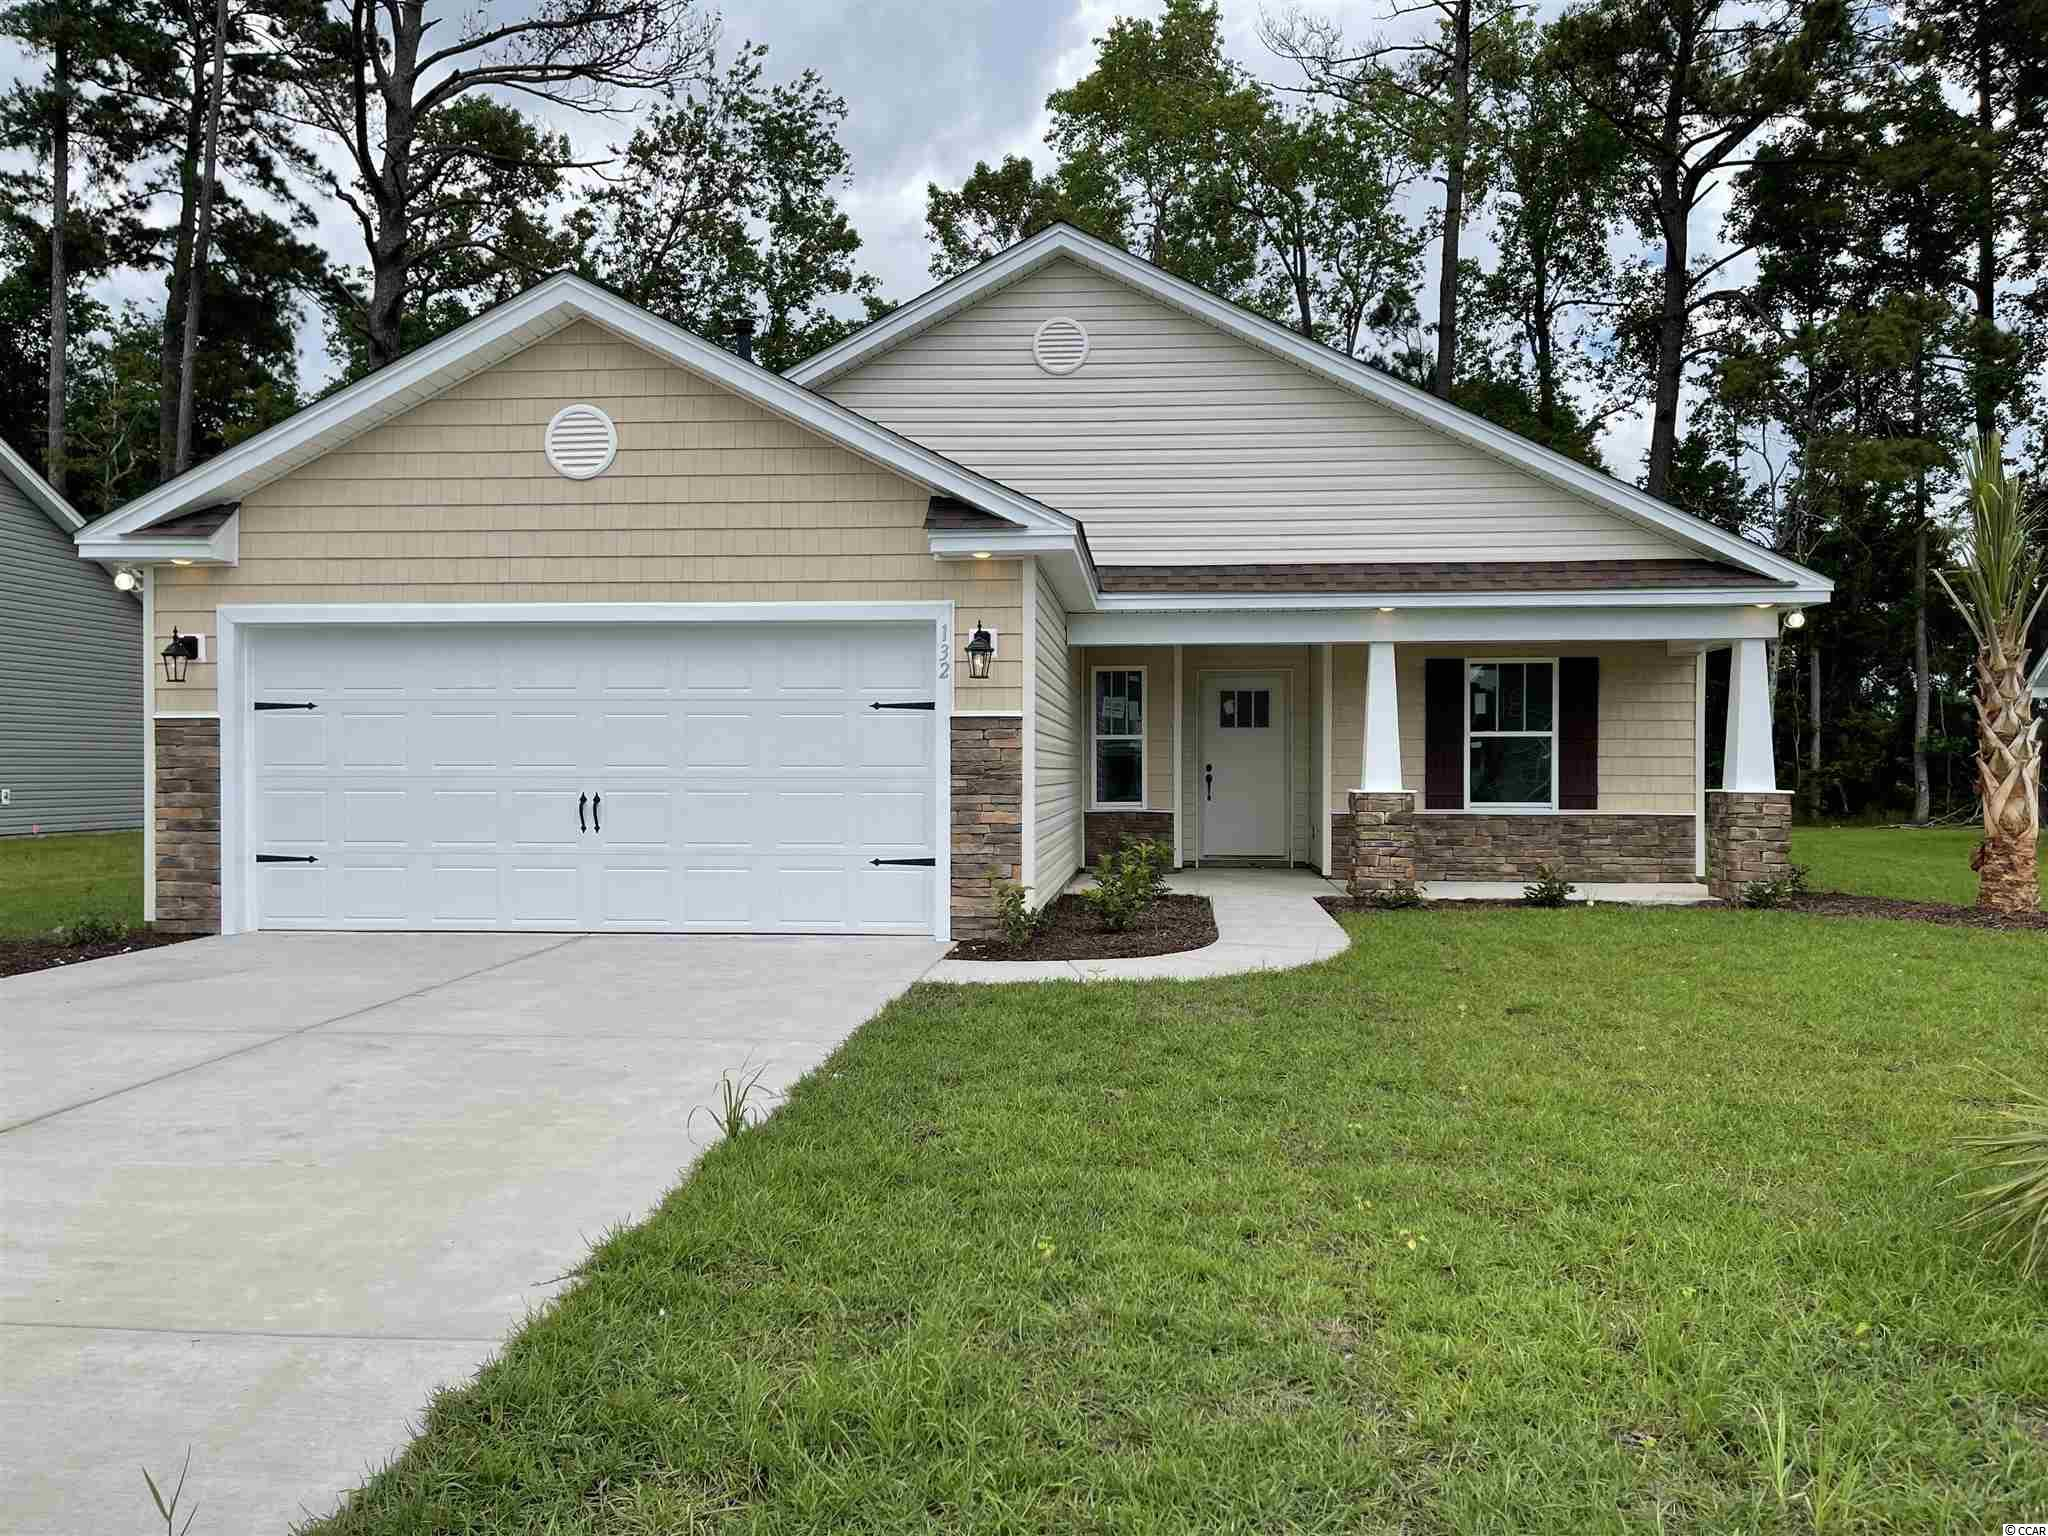 """Natural Gas quiet community located in Little River/North Myrtle Beach only a few miles from the Beach and major shopping! This is the Ruby floor plan  built on a 0.20 ac home site. This home includes finished 2 car garage, a covered rear patio and a covered front porch!! Spacious and open kitchen with lots of counter space, granite countertops, White shaker kitchen cabinets with crown molding and hardware included. 5 ft cultured marble shower and a garden tub in Master bathroom, large walk in master closet. Ceramic tile in all bathrooms and Laundry room, LVP flooring in Family Room, Foyer, Hall, Dining. Vaulted ceiling in Family room and every bedroom. Wainscot and 5 1/2 """" beaded baseboards for Custom look!! Home also includes TAEXX pest control tubing, lawn irrigation and Ring video doorbell!!!Stone accents on the exterior as well. All measurements are approximate *Photos of a similar home* Some items on the photos may bean additional cost. Anticipating completion time Summer 2021"""